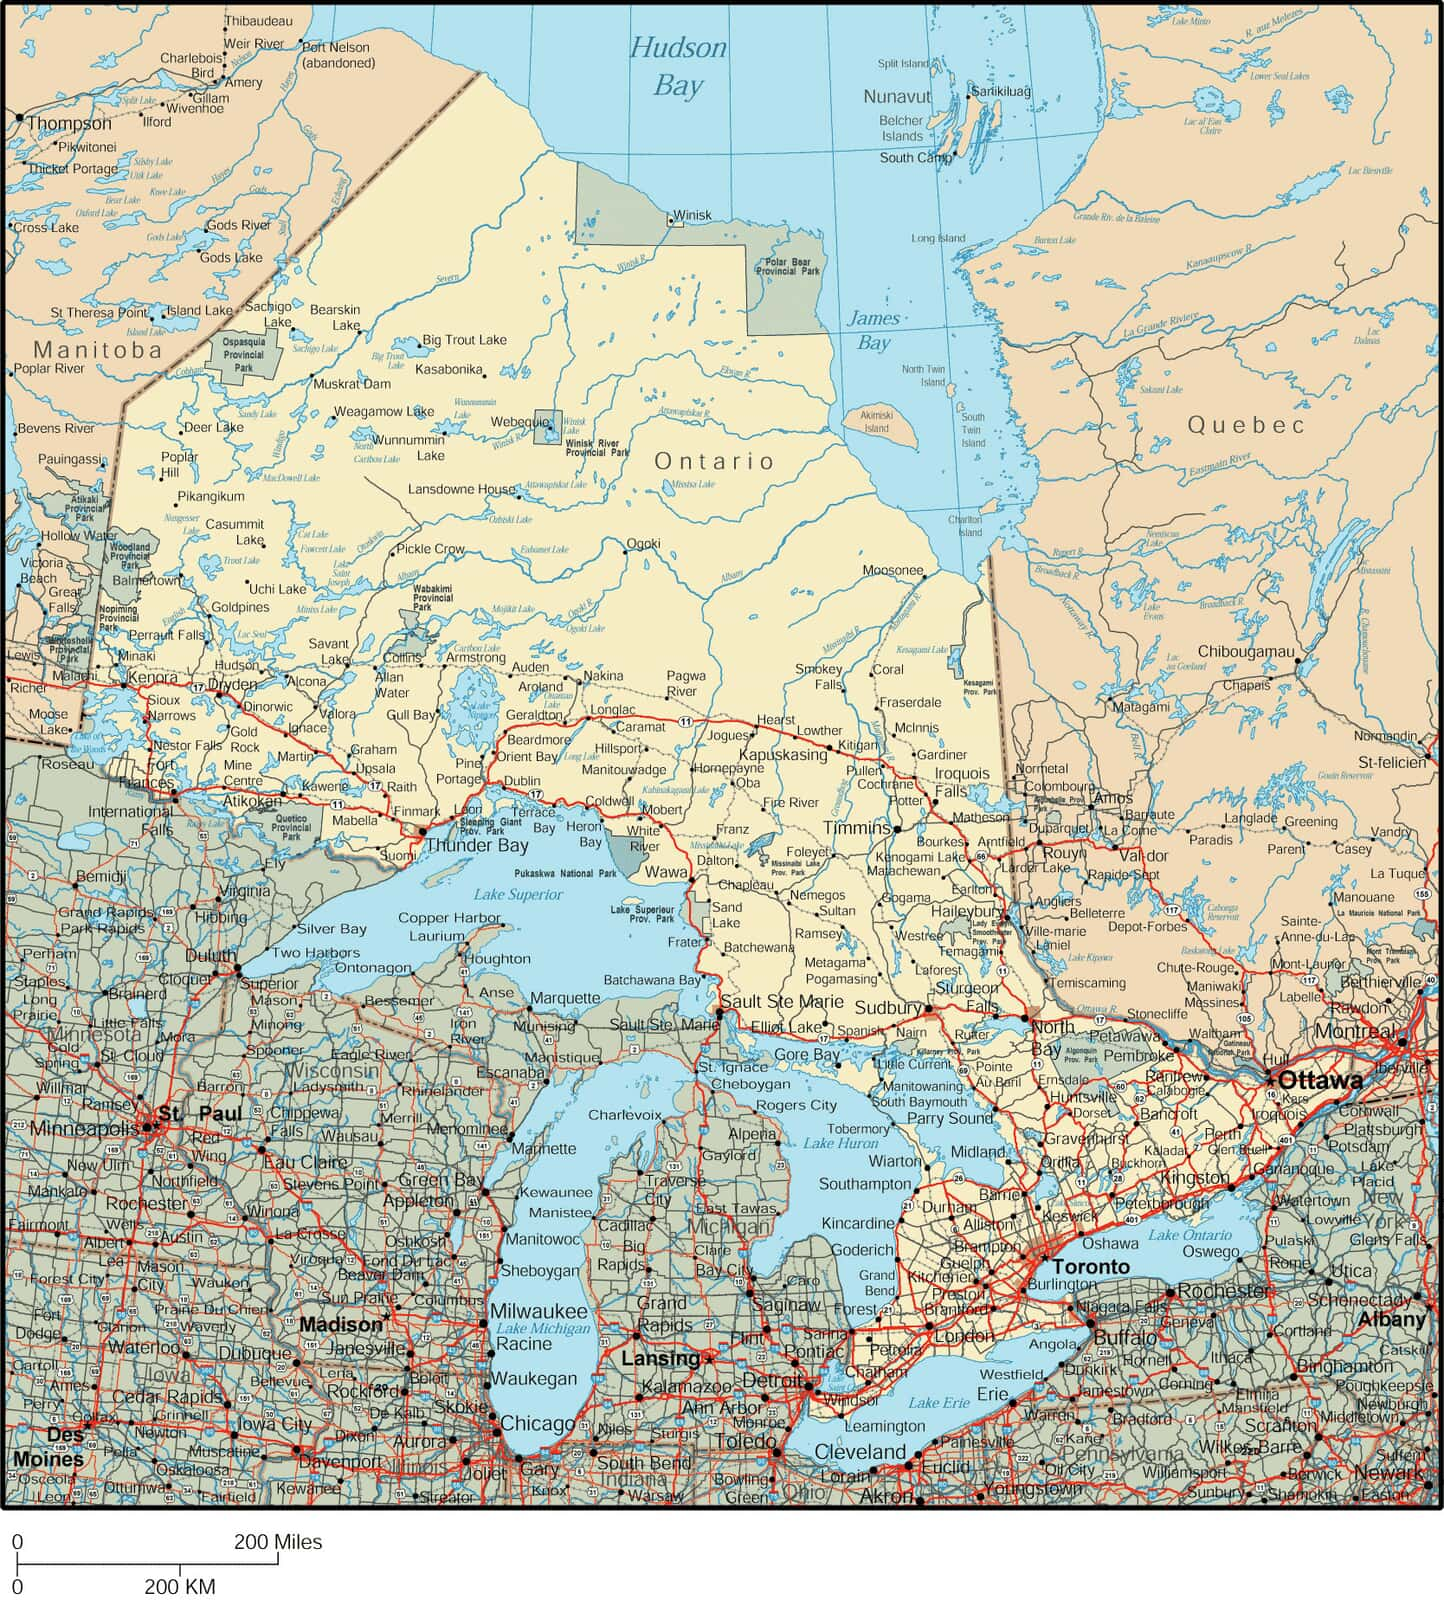 Onterio Canada Map.Ontario Map Detailed Map Of Ontario Canada